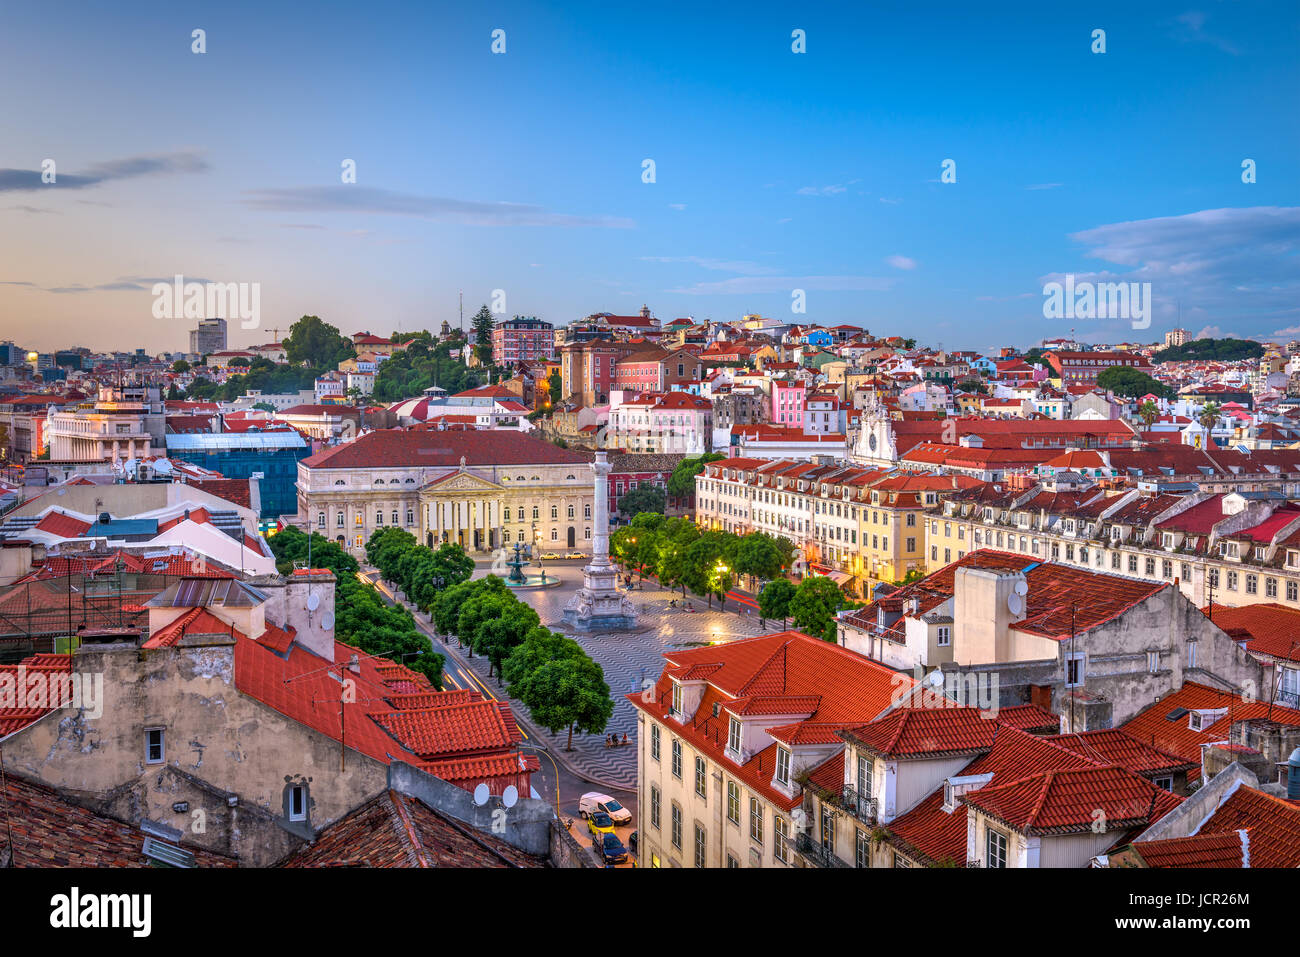 Lisbonne, Portugal Pombaline skyline de district sur la place Rossio. Photo Stock